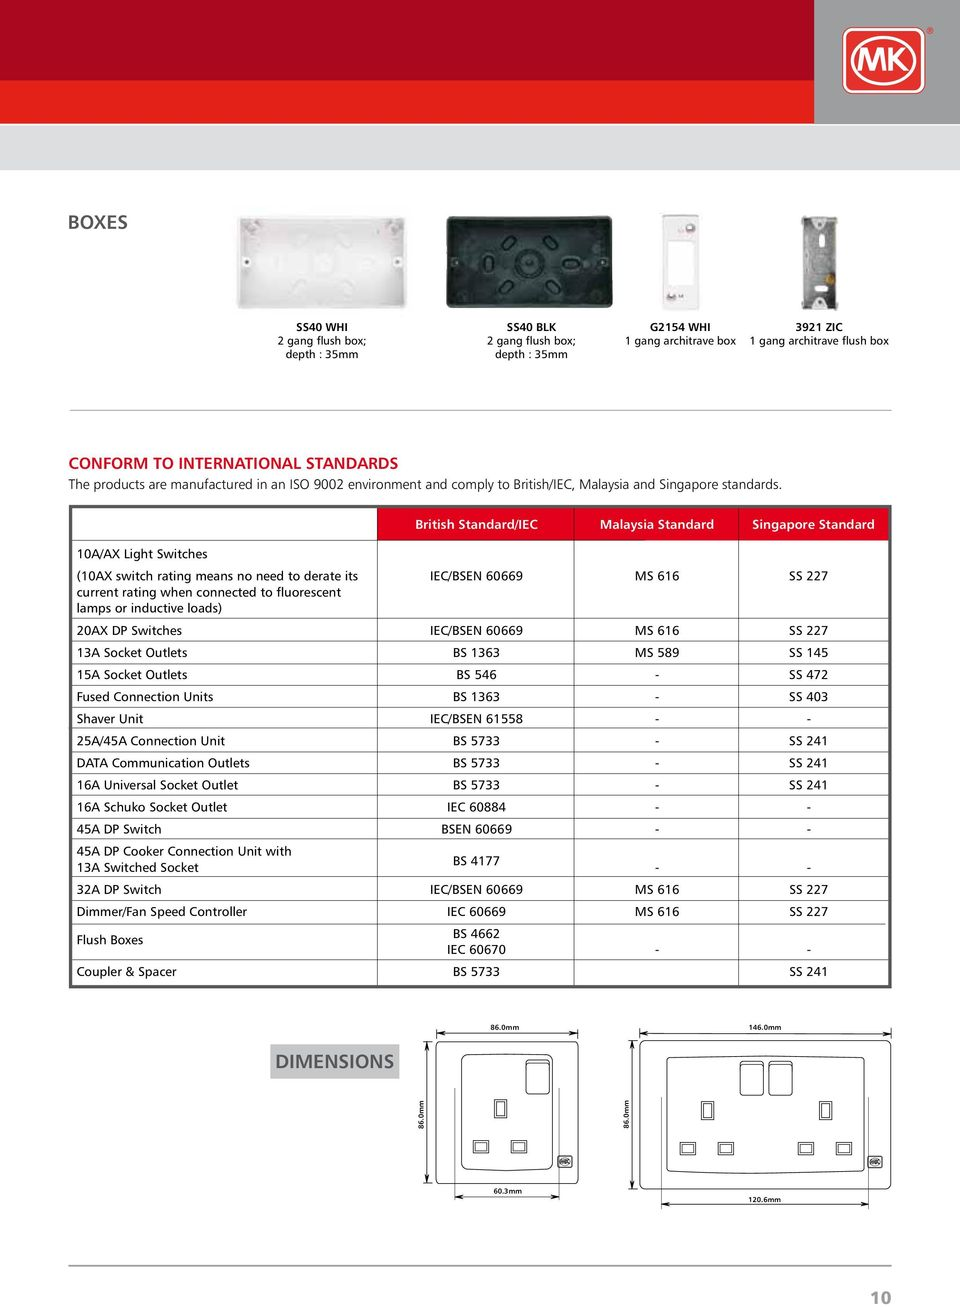 Slimline Plus Catalogue No R6 Pdf Mk Logic White 50a Dp Pull Cord Ceiling Switch Pilot Light British Standard Iec Malaysia Singapore 10a Ax Switches 10ax 14